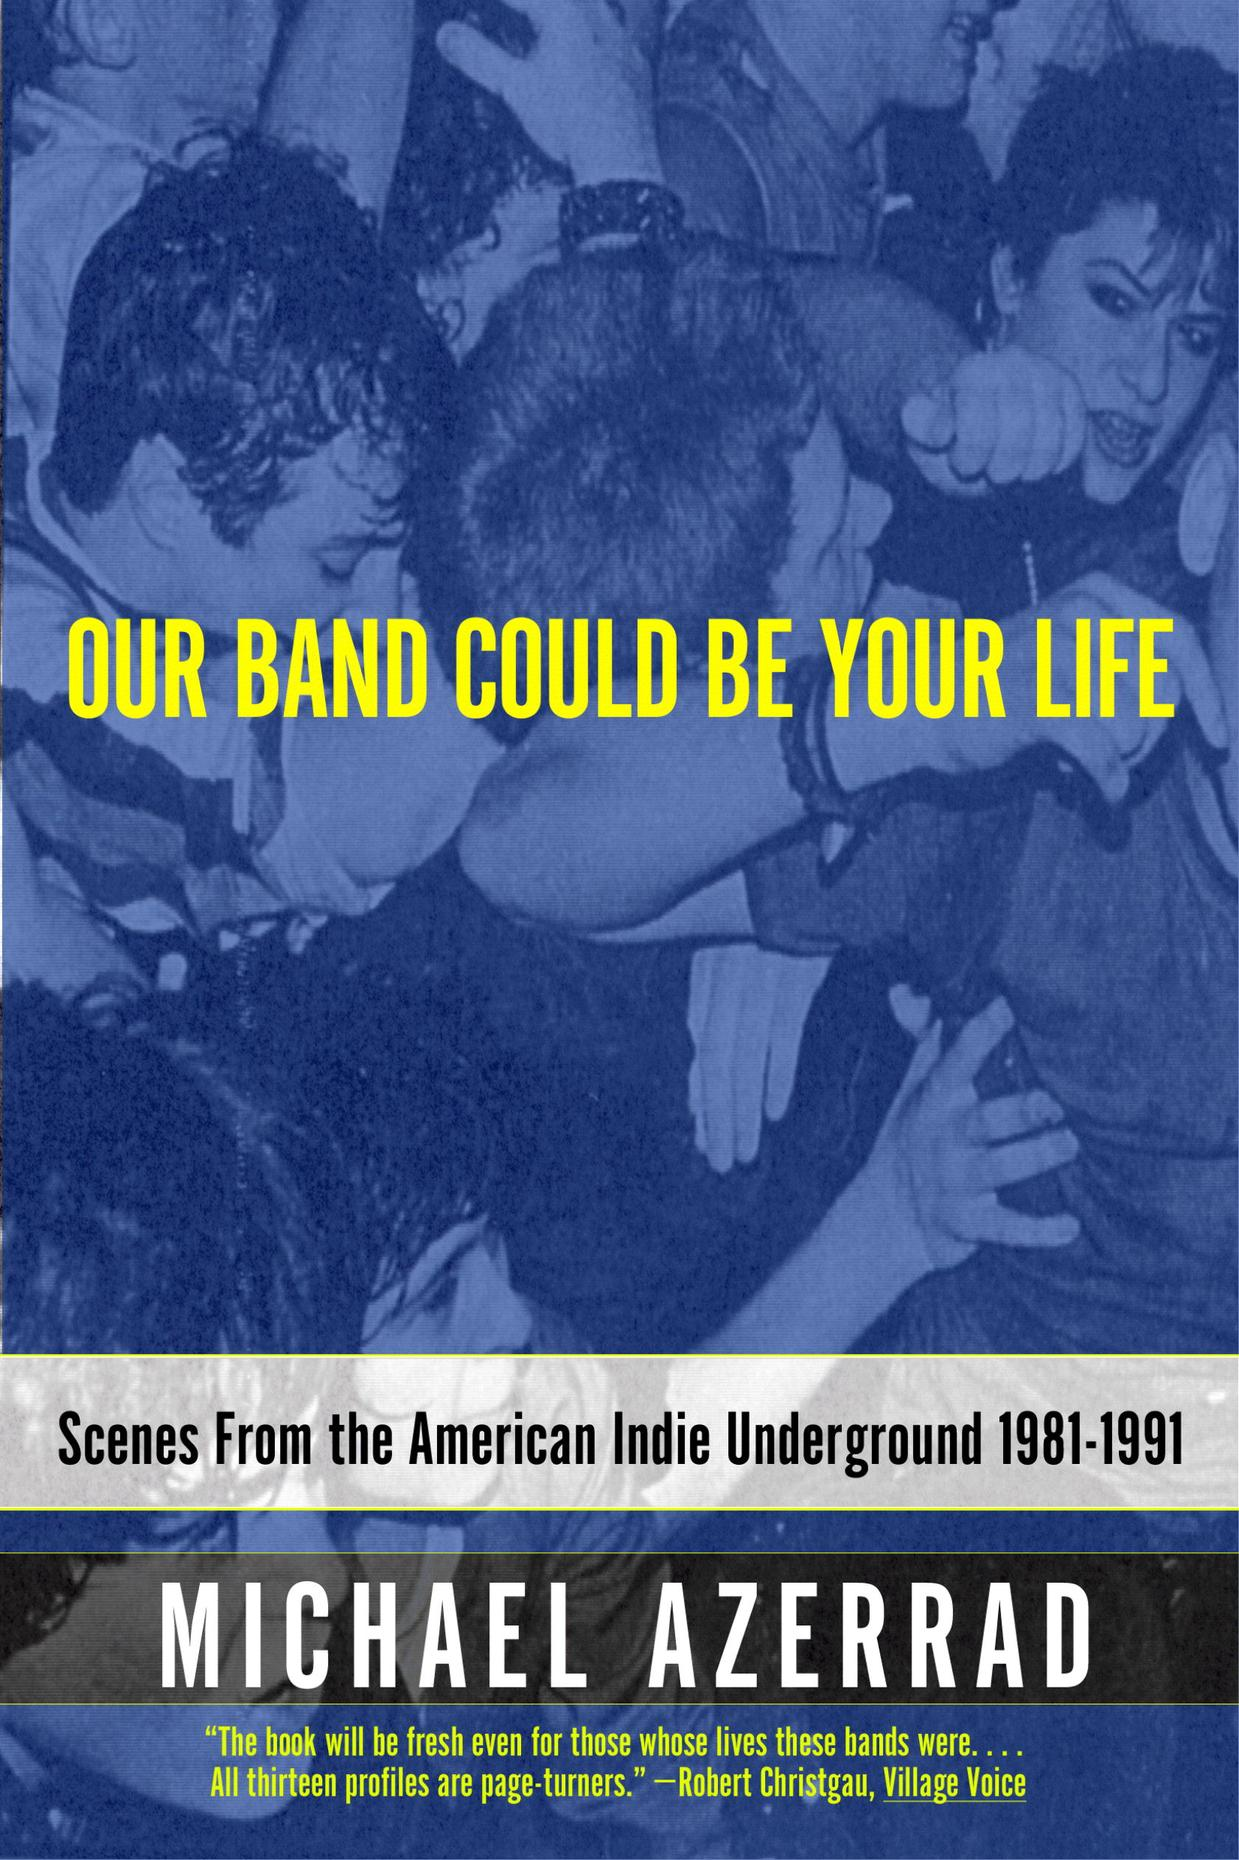 Our Band Could Be Your Life by Michael Azerrad.